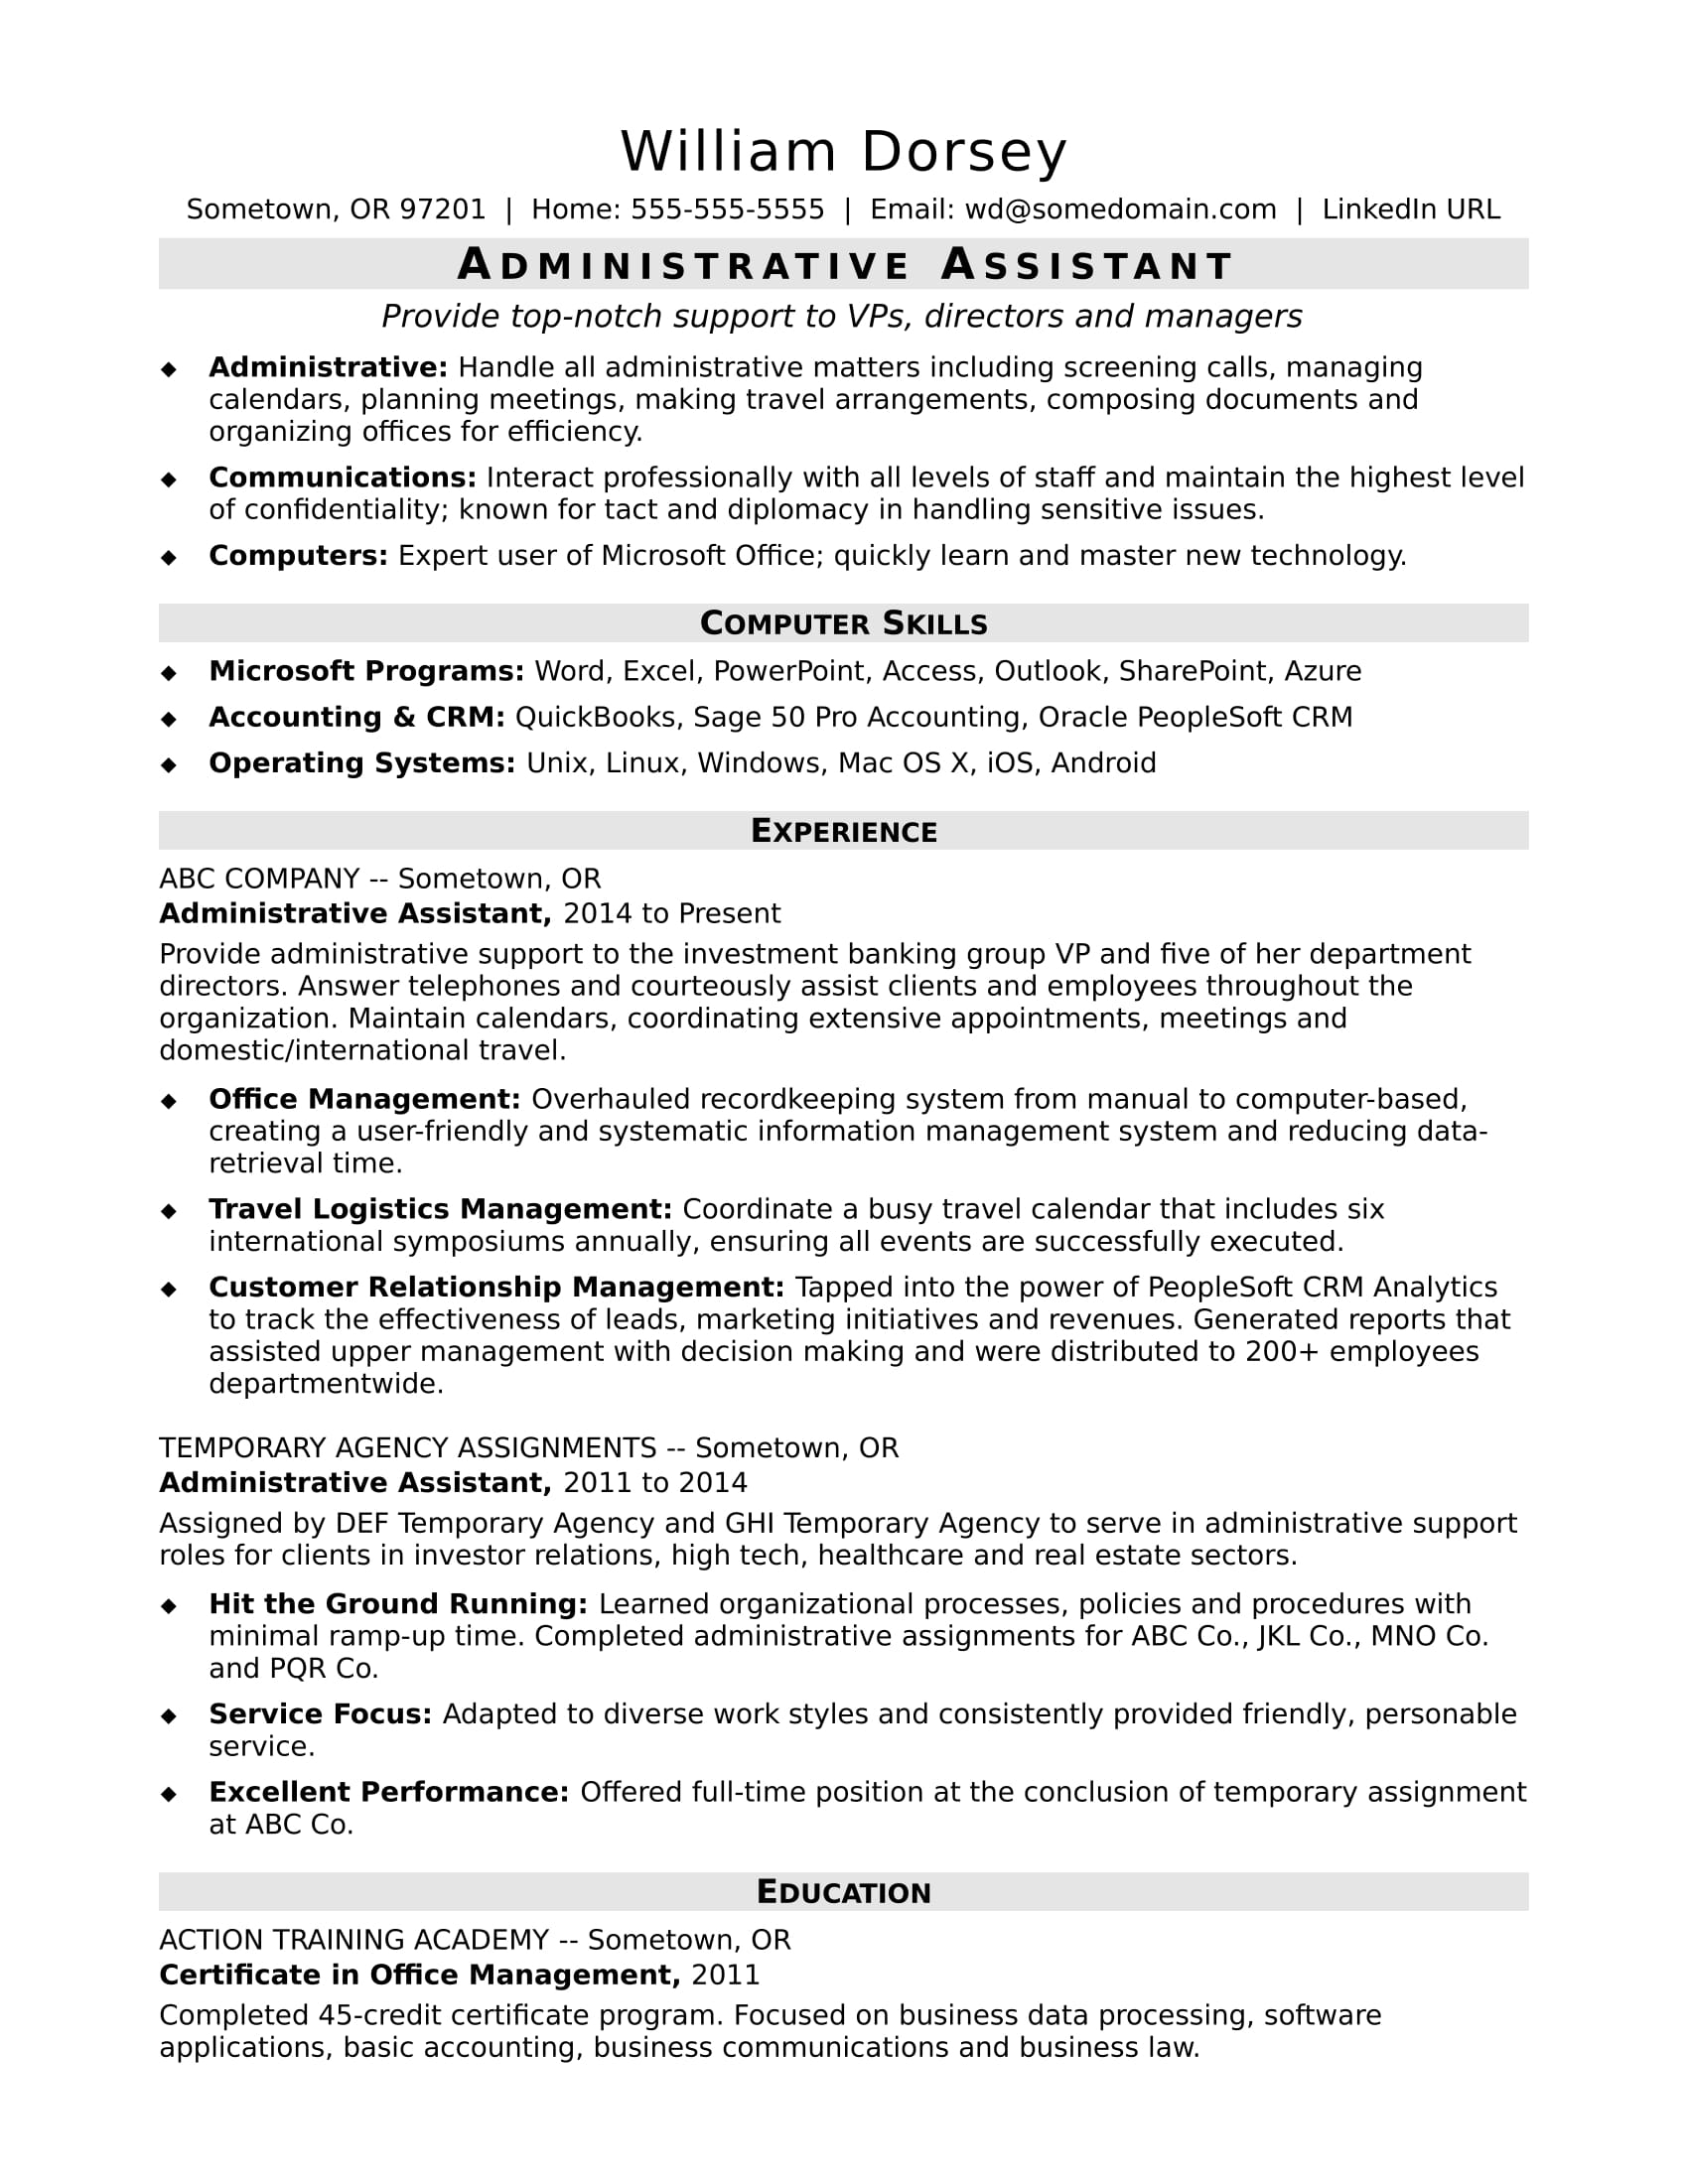 midlevel administrative assistant resume sample monster admin boeing objective the google Resume Admin Assistant Resume Sample